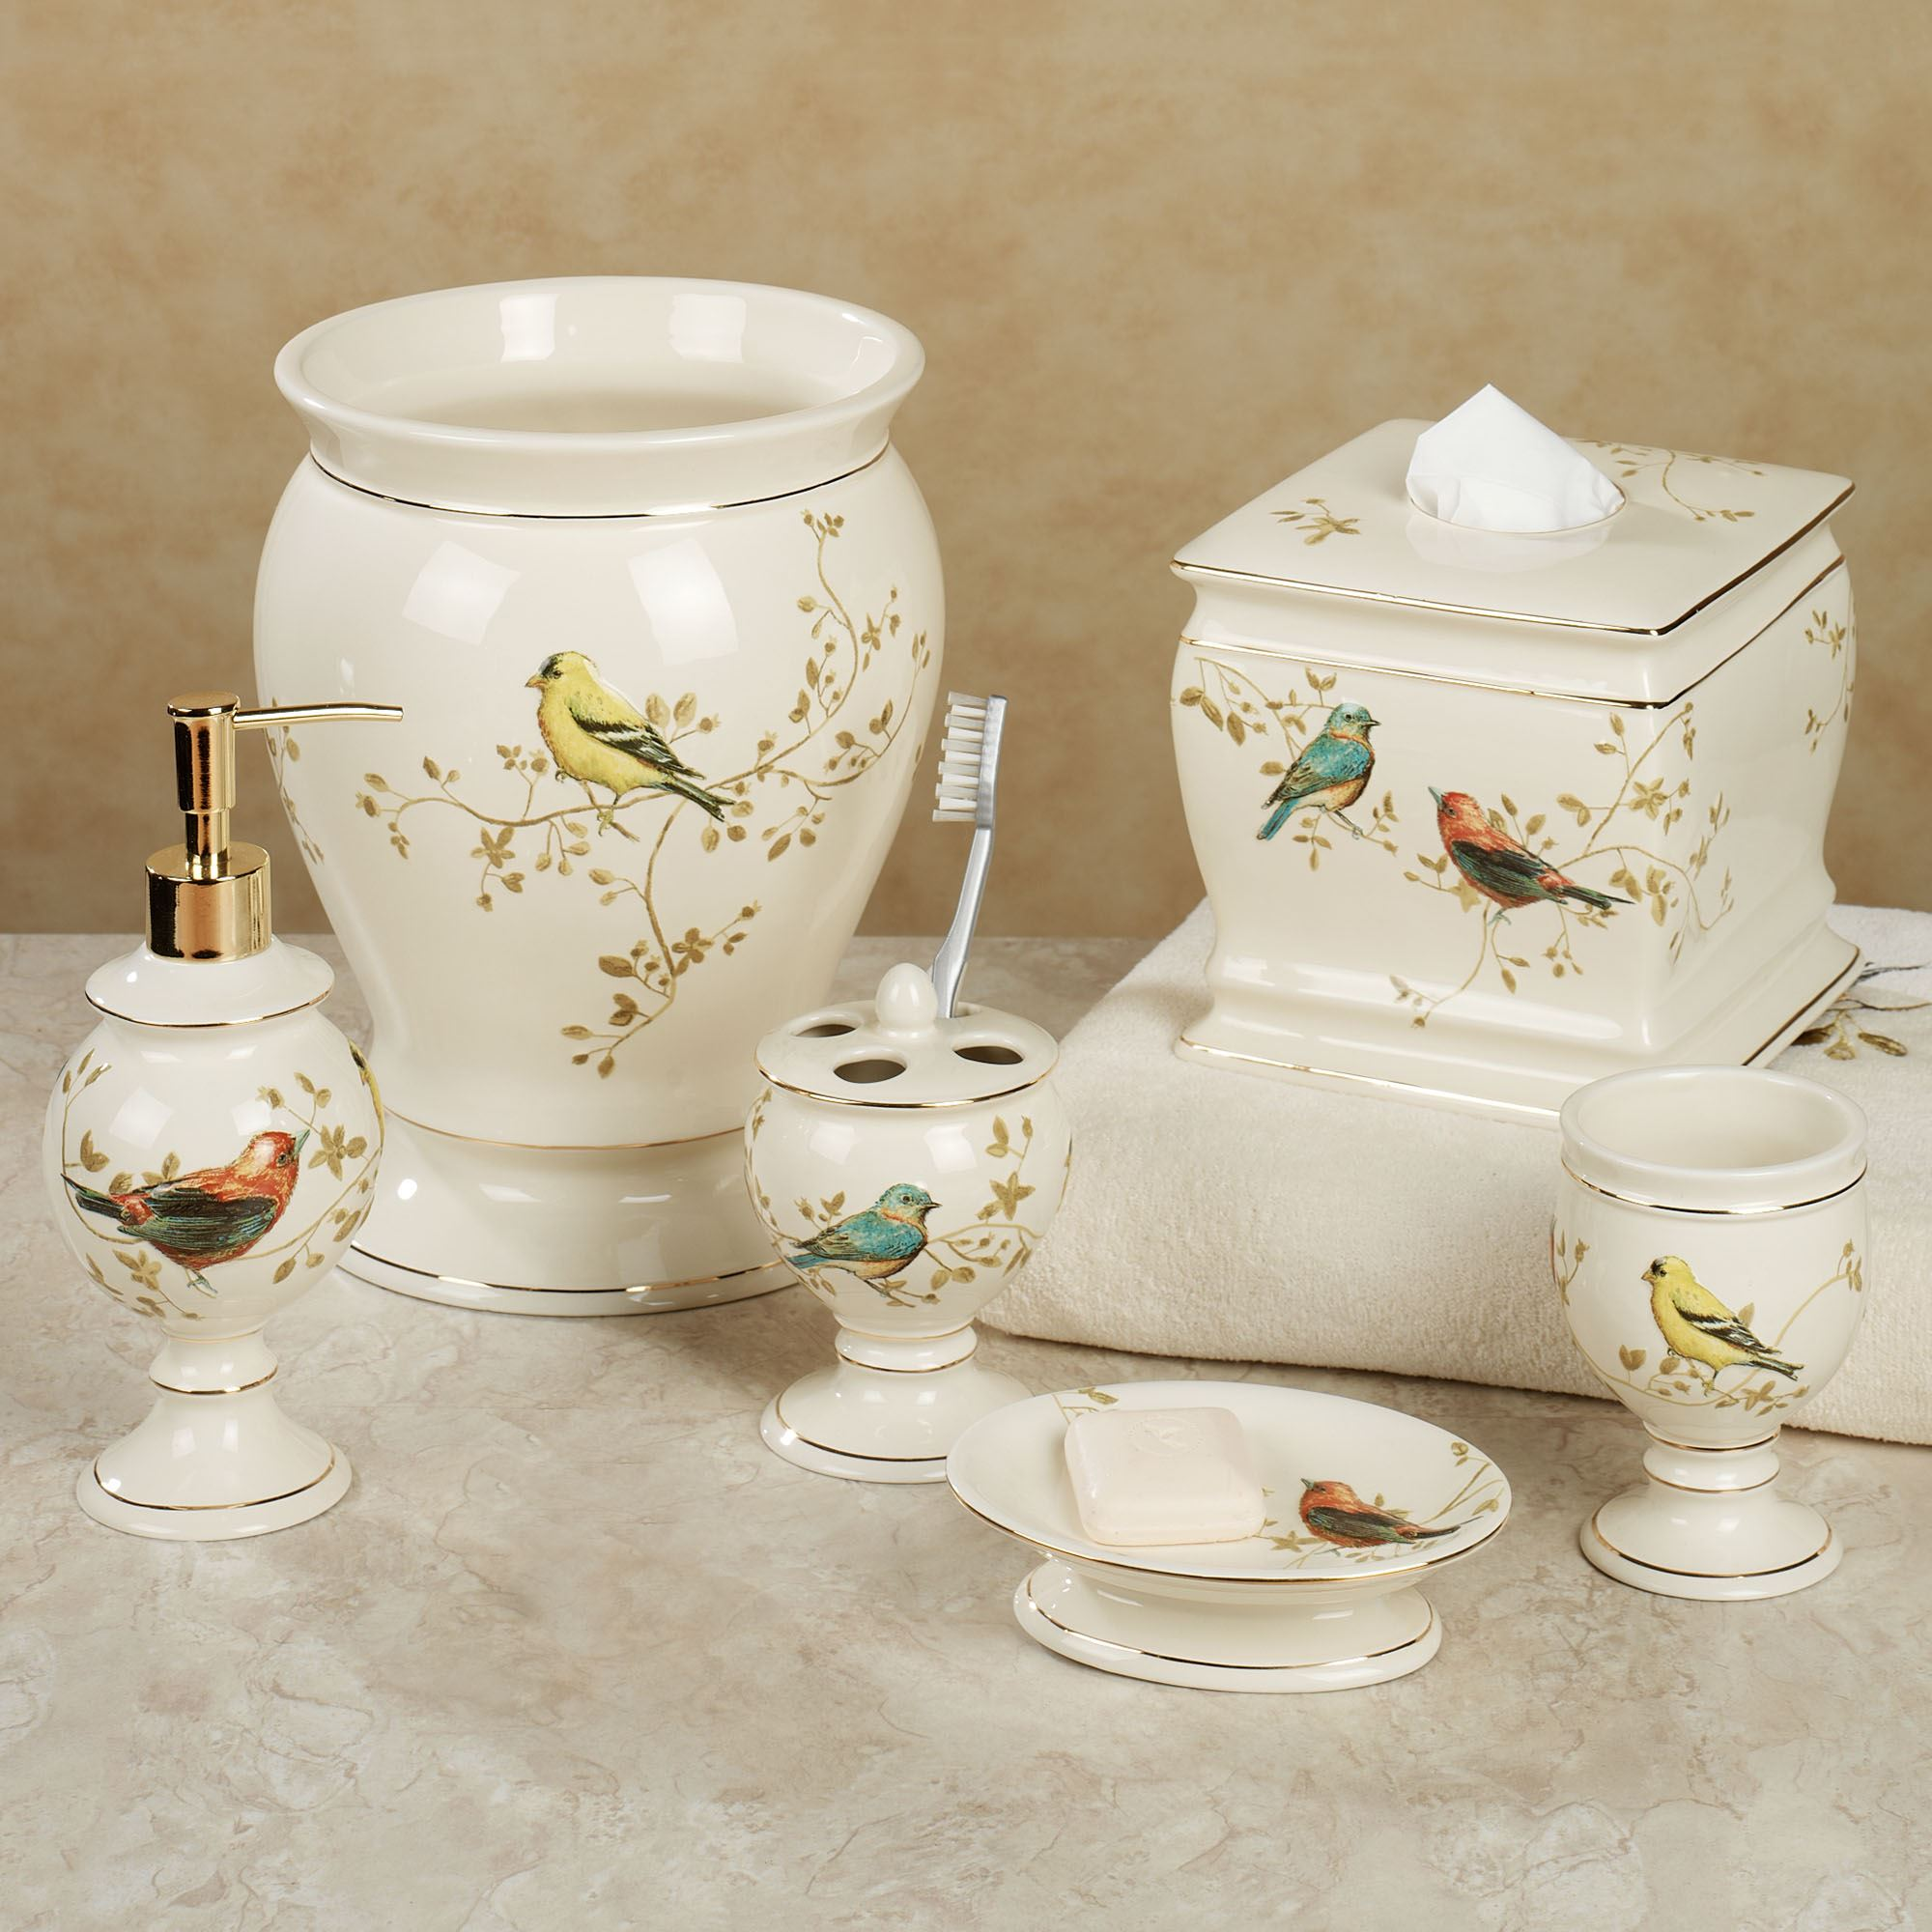 Gilded bird ceramic bath accessories for Home bathroom accessories